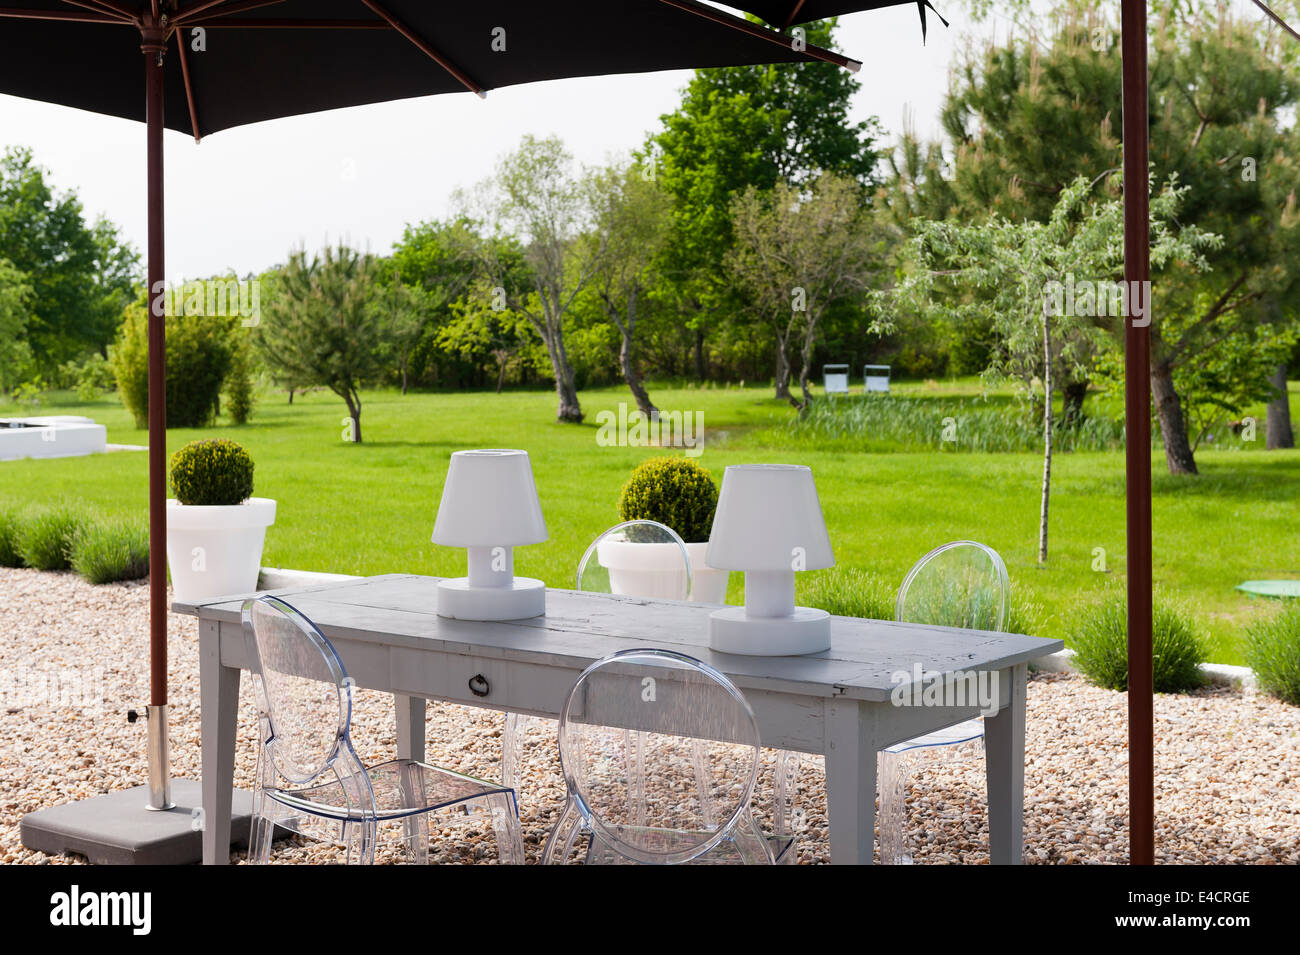 Garden Lights On Wooden Table With Philippe Starck Ghost Chairs Under Parasol In Garden Stock